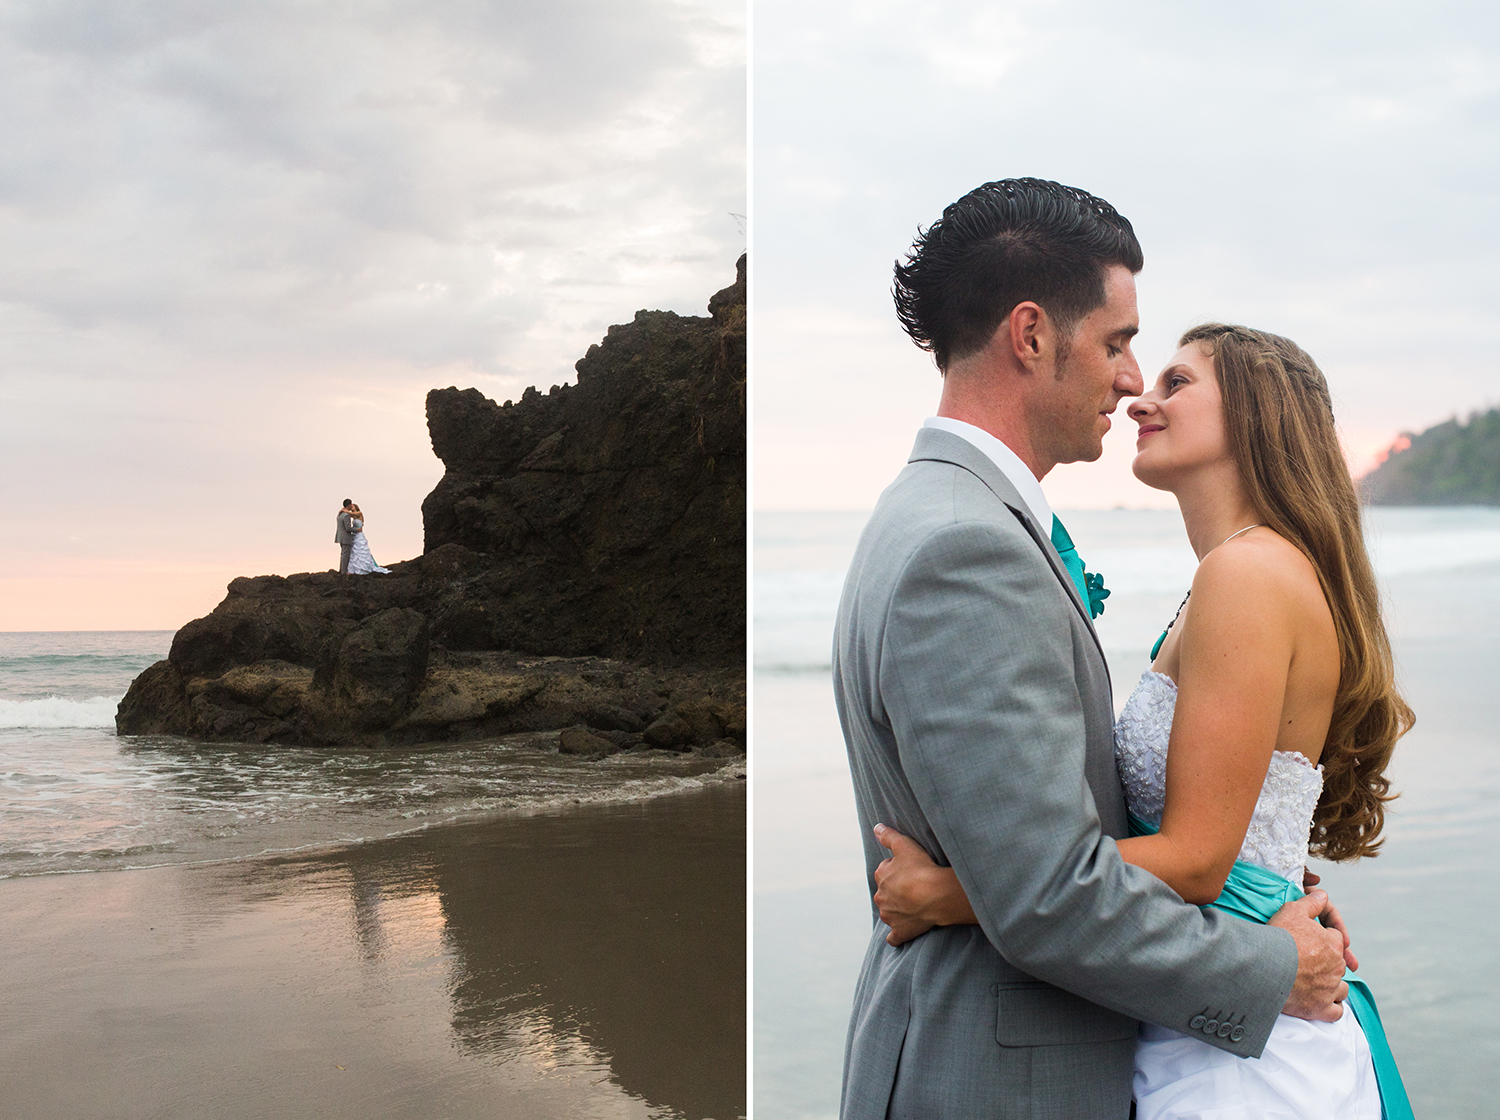 CostaRica_BeachWedding_MichelleGirardPhotography12.jpg